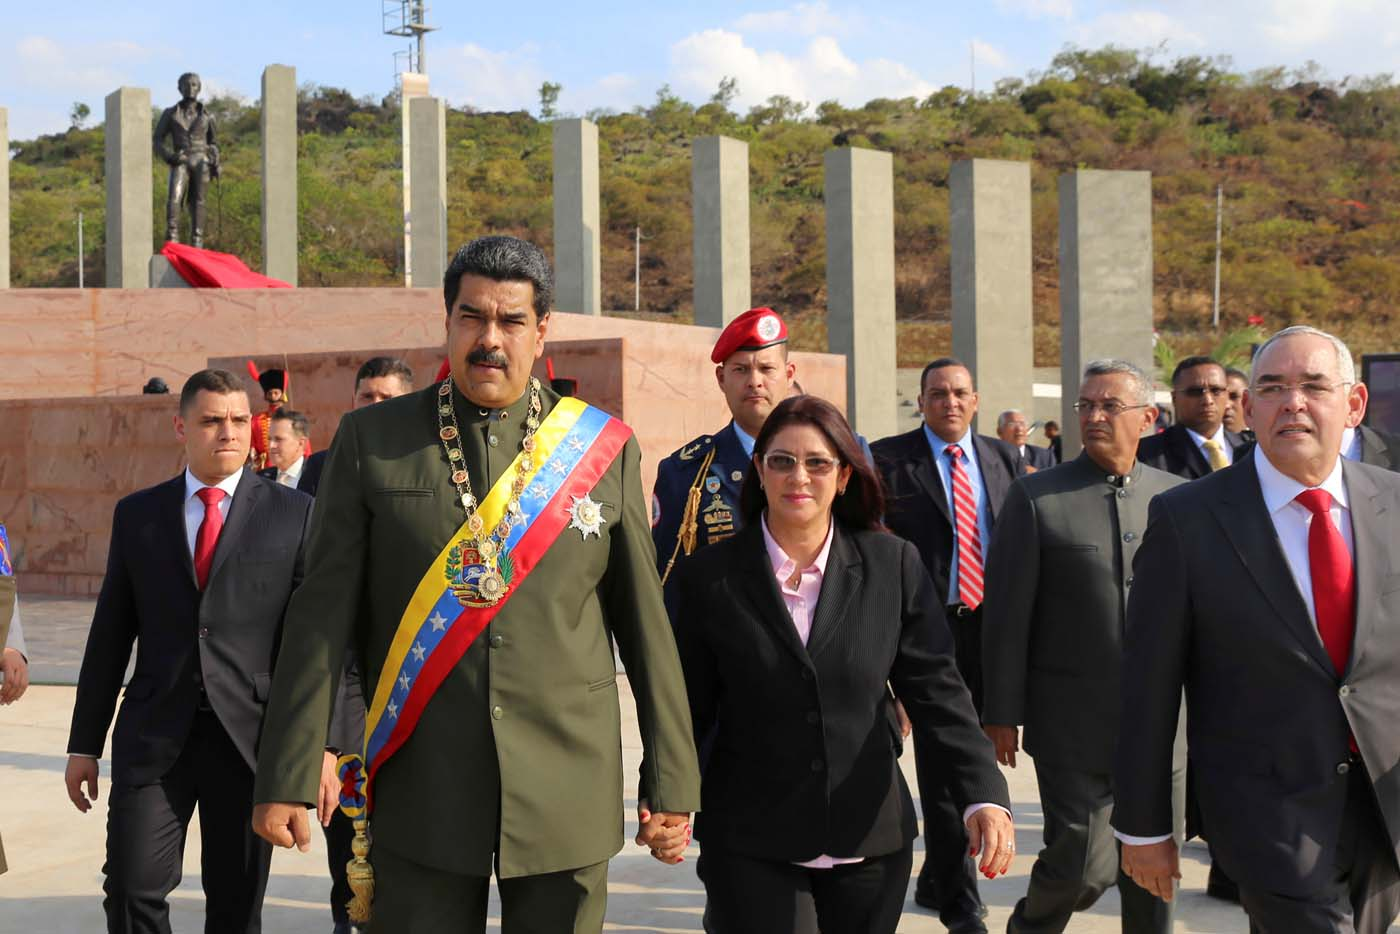 Venezuela's President Nicolas Maduro (2nd L) arrives to an event to conmemorate the bicentennial of the Battle of San Felix, next to his wife Cilia Flores (C), in San Felix, Venezuela April 11, 2017. Miraflores Palace/Handout via REUTERS ATTENTION EDITORS - THIS PICTURE WAS PROVIDED BY A THIRD PARTY. EDITORIAL USE ONLY.